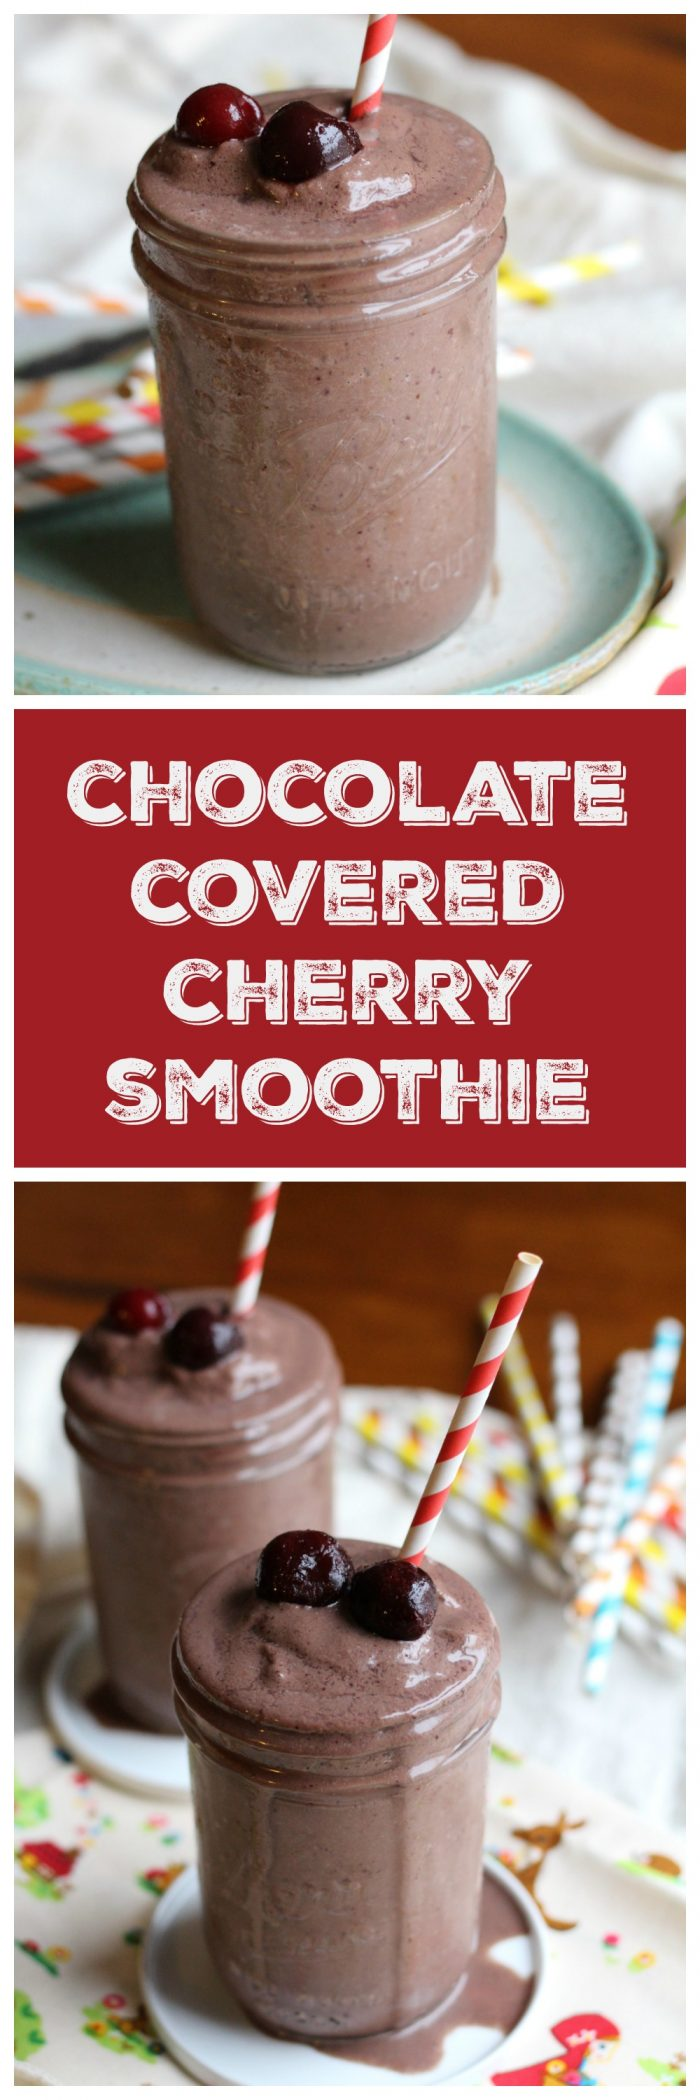 Chocolate covered cherry smoothie from 40 Days of Green Smoothies by Becky Striepe. This vegan & dairy-free smoothie tastes like a dessert but is packed with nutrient-dense ingredients. Great for breakfast or a snack! | cadryskitchen.com